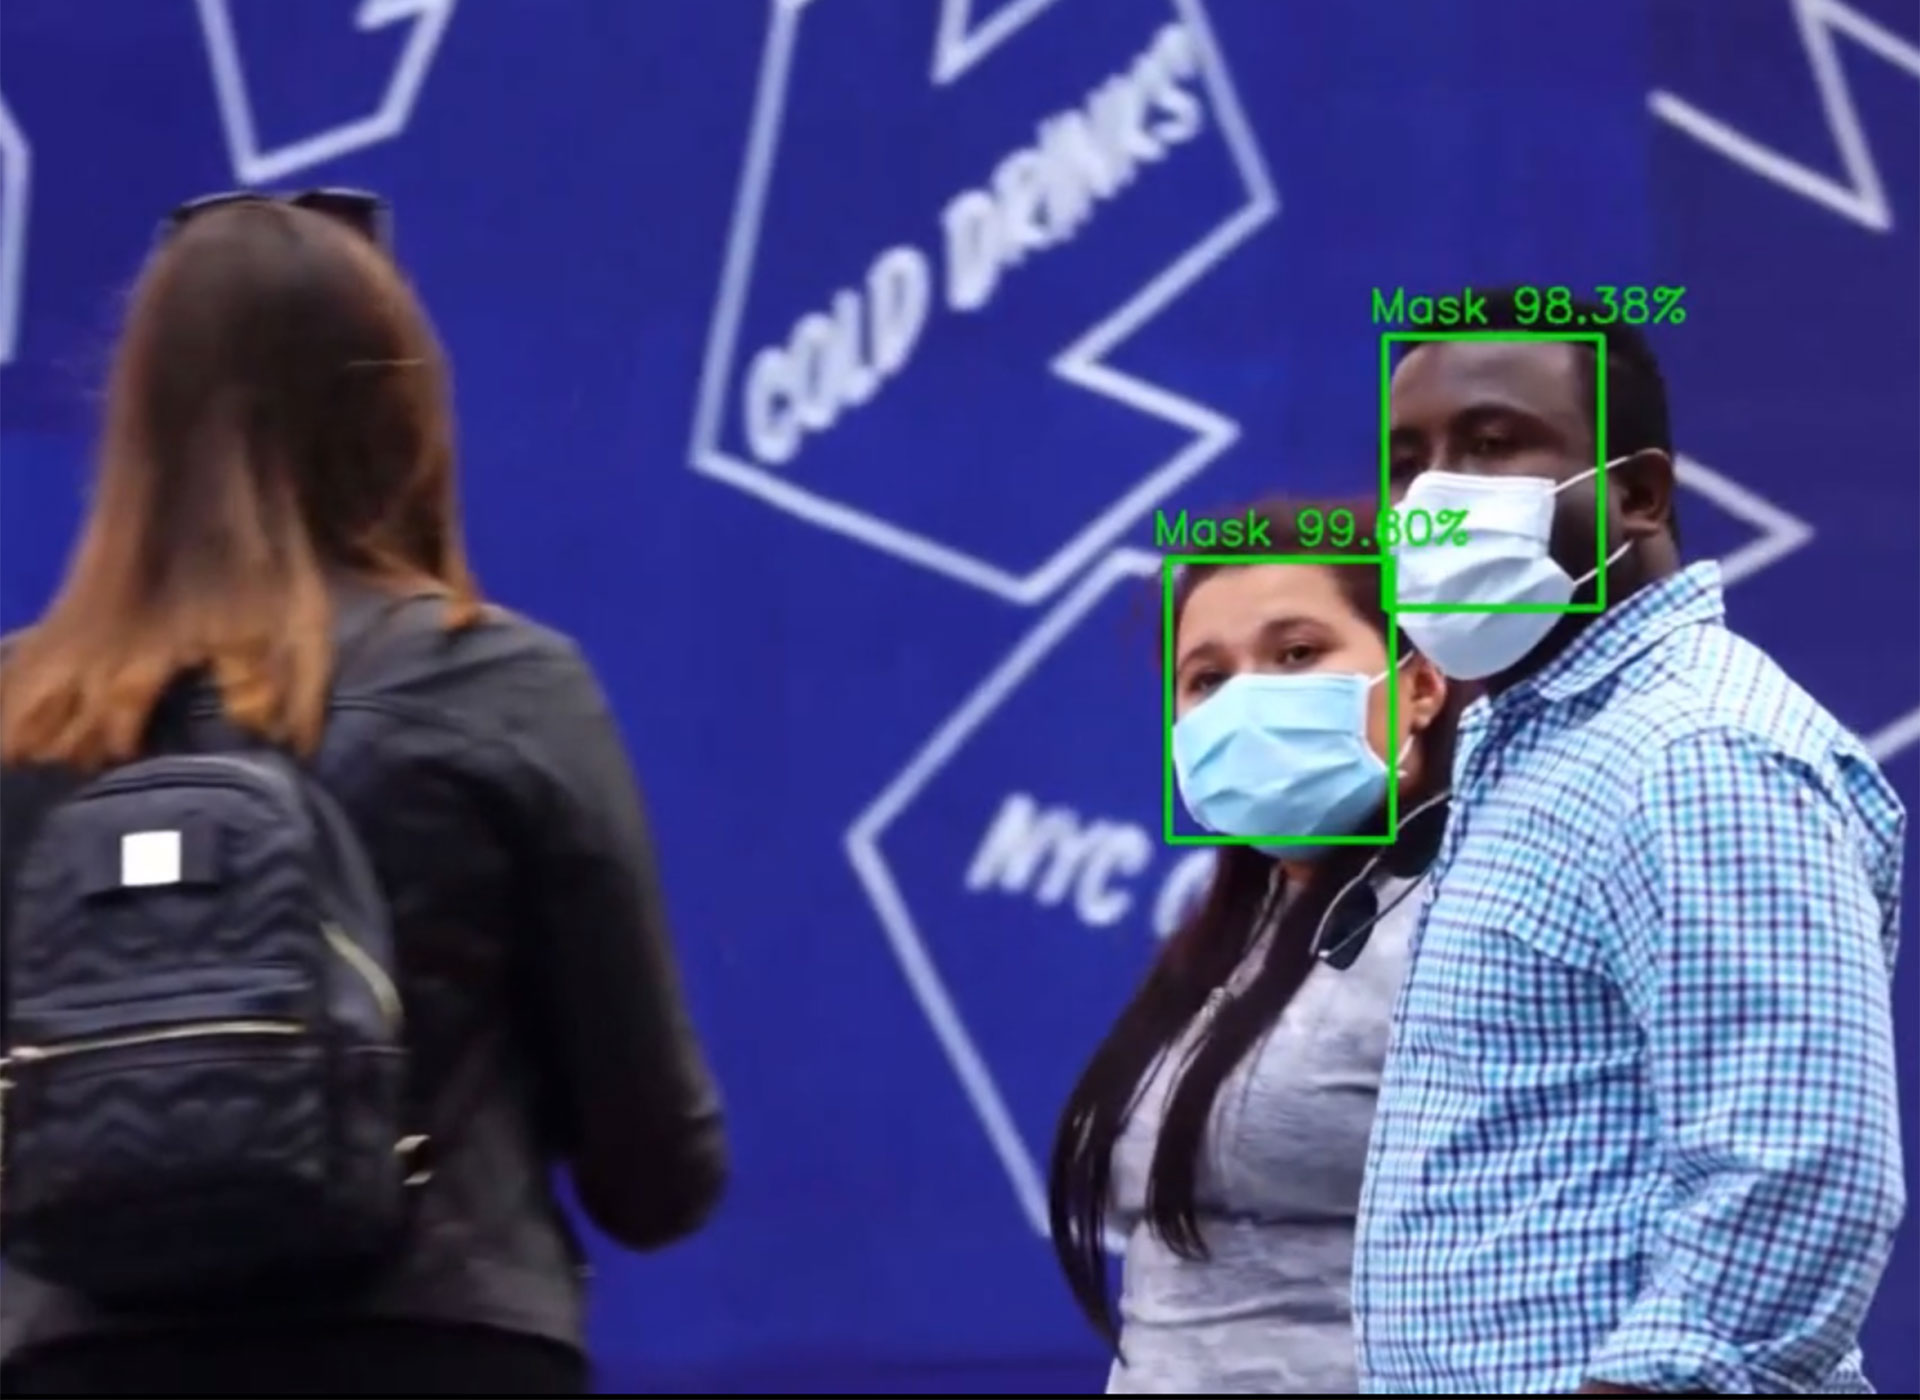 Facial recognition applied to social distancing, mask control